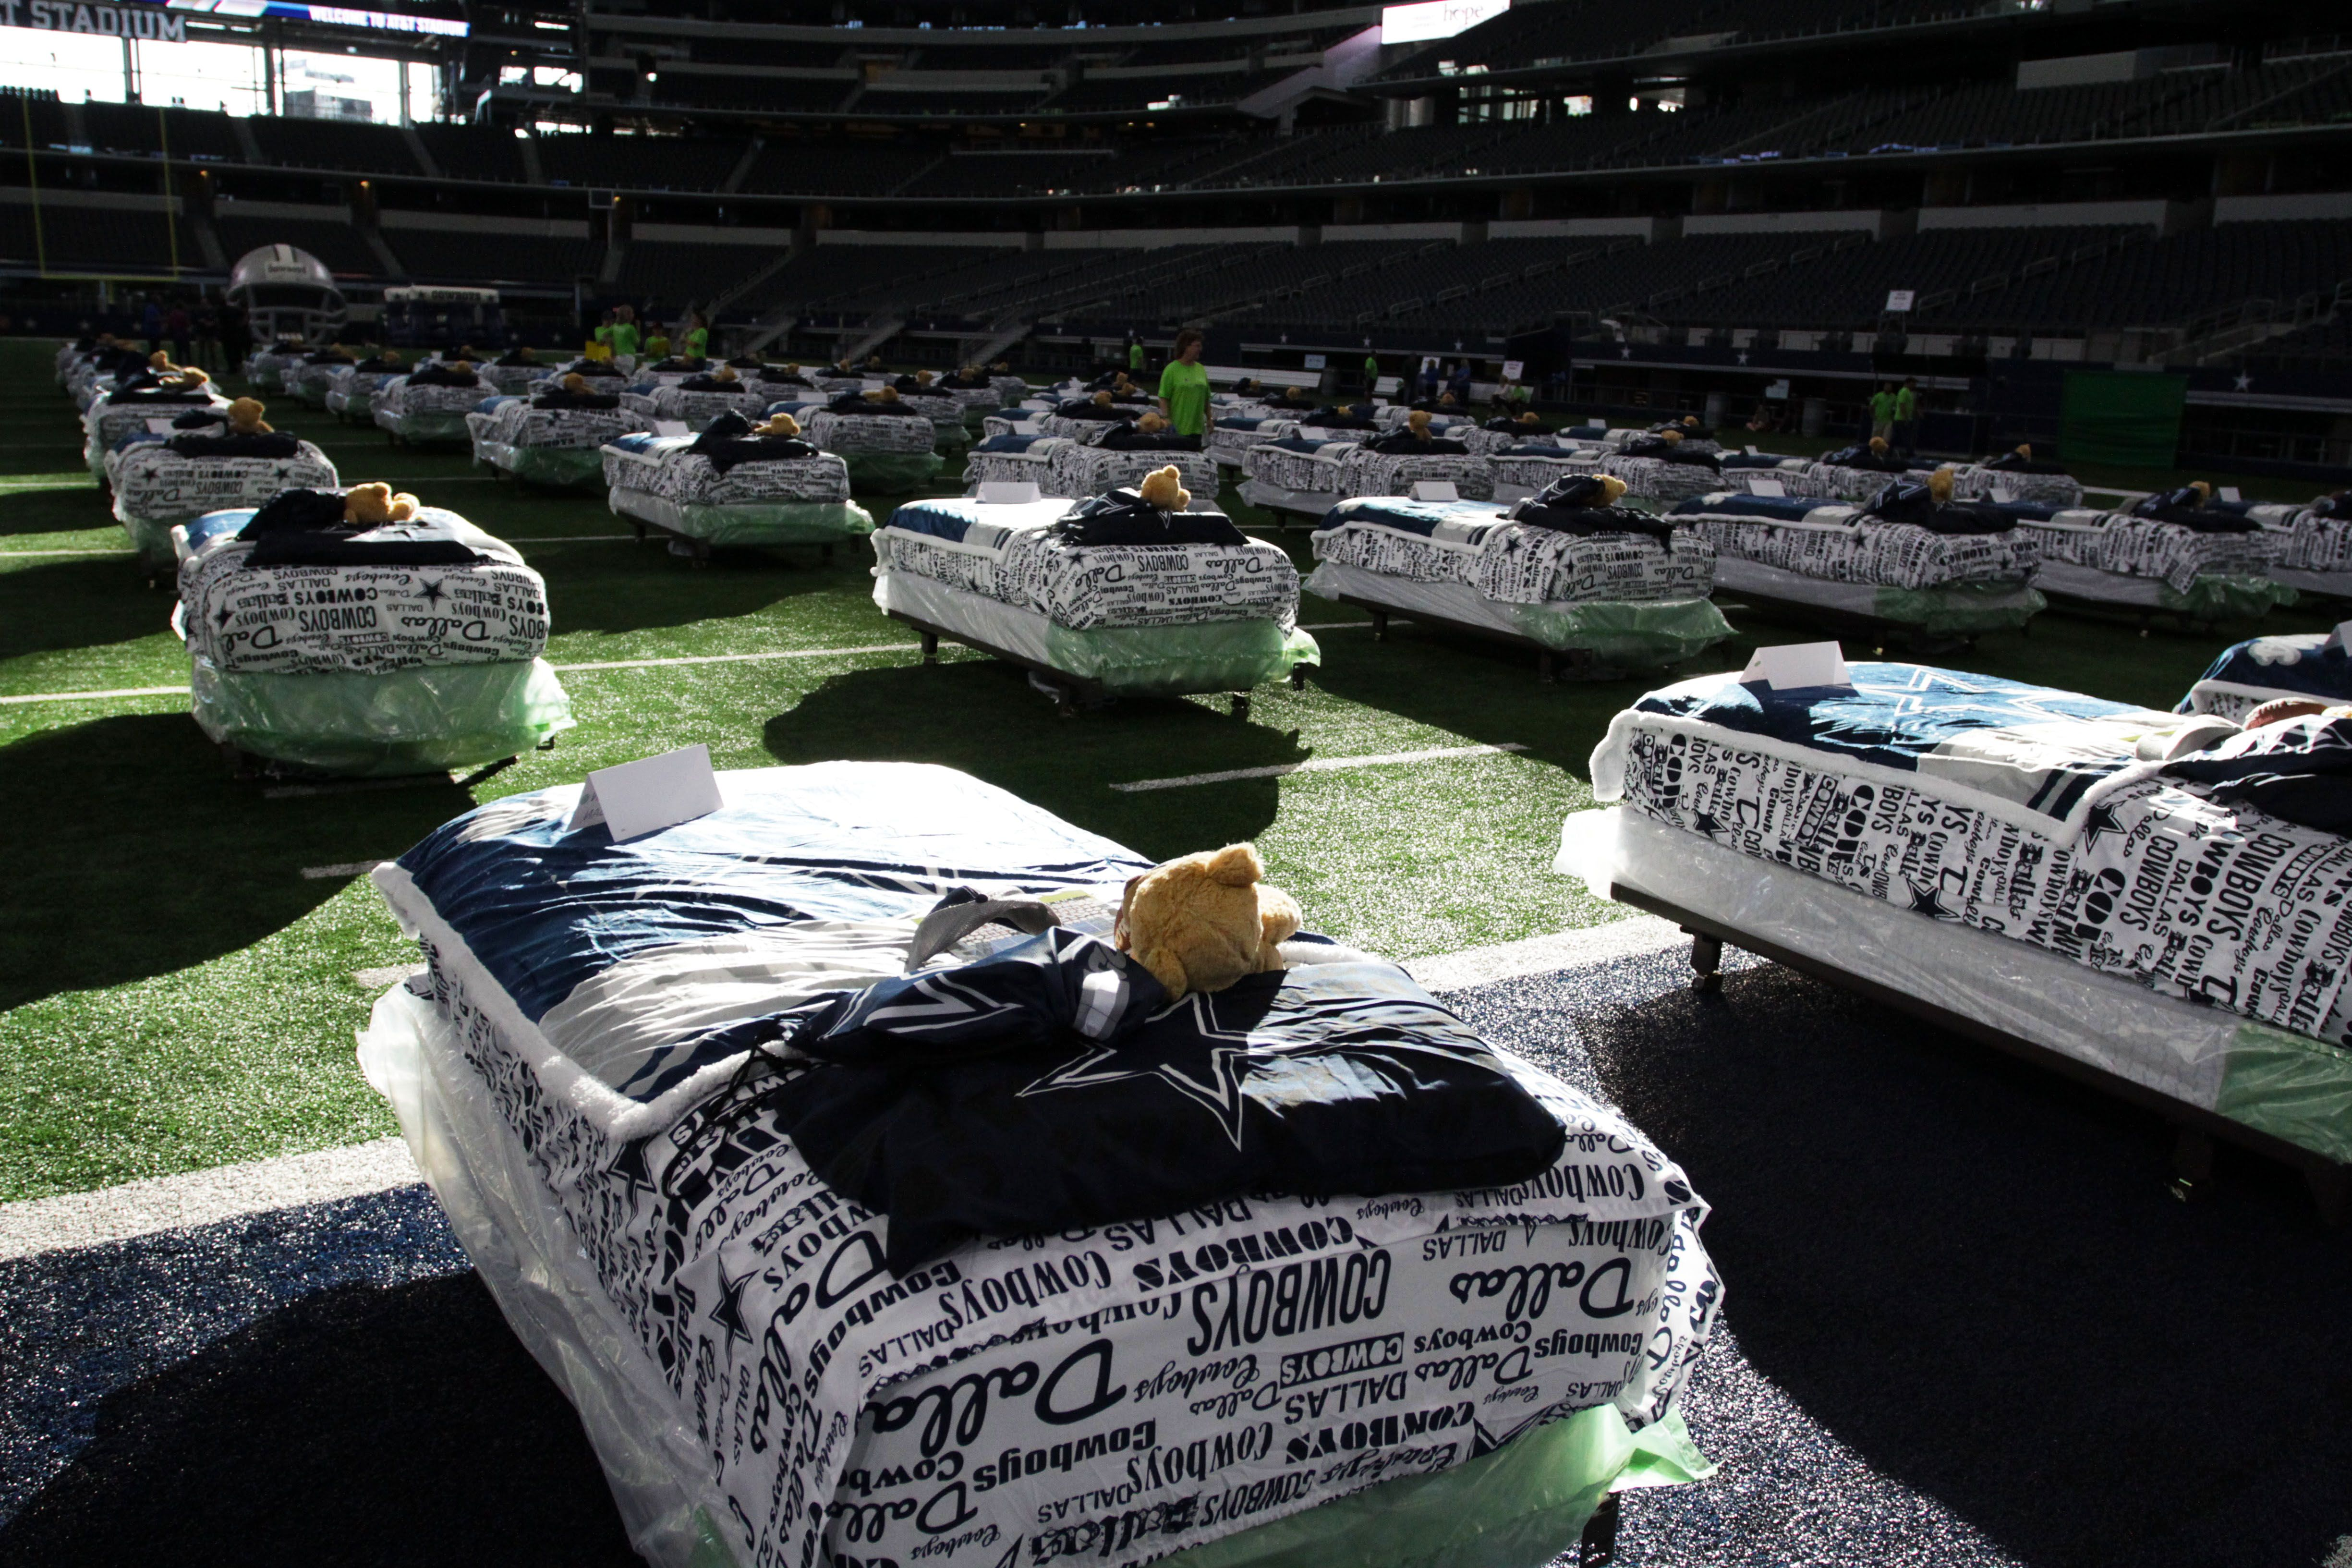 f3496ce591a A slumber party of stadium-sized proportions took place this past weekend  at AT&T Stadium, thanks to the Dallas Cowboys and partner Ashley HomeStore.